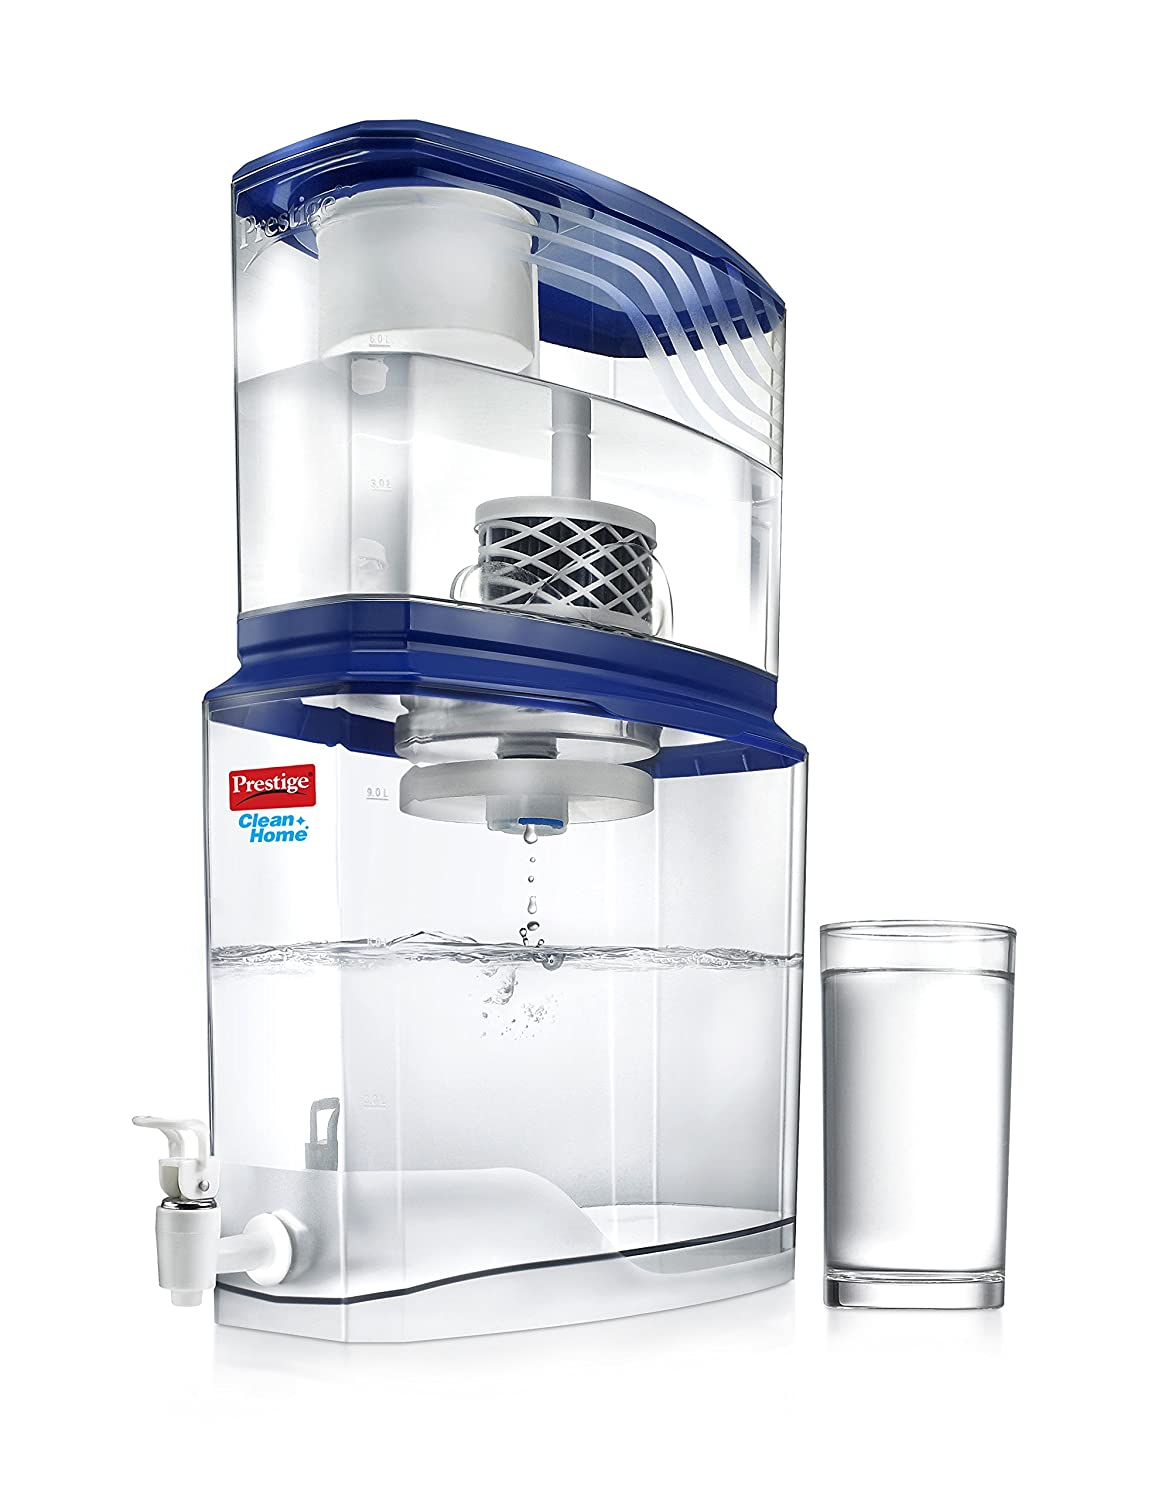 5 Best Water Purifiers below ₹5000 in India 2019 - Reviews & Buying Guide 5